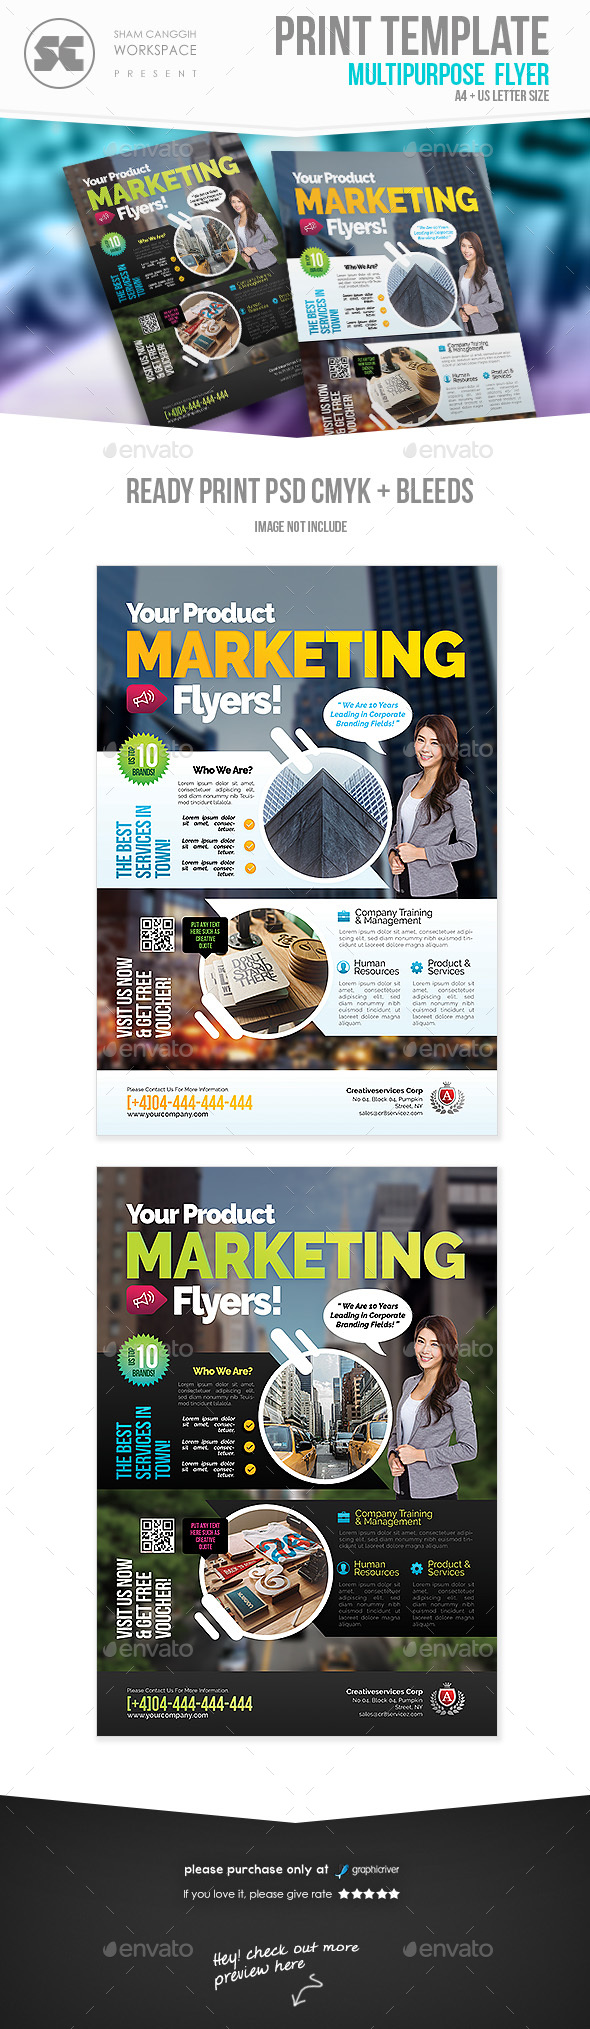 Product Marketing Flyer - Corporate Flyers